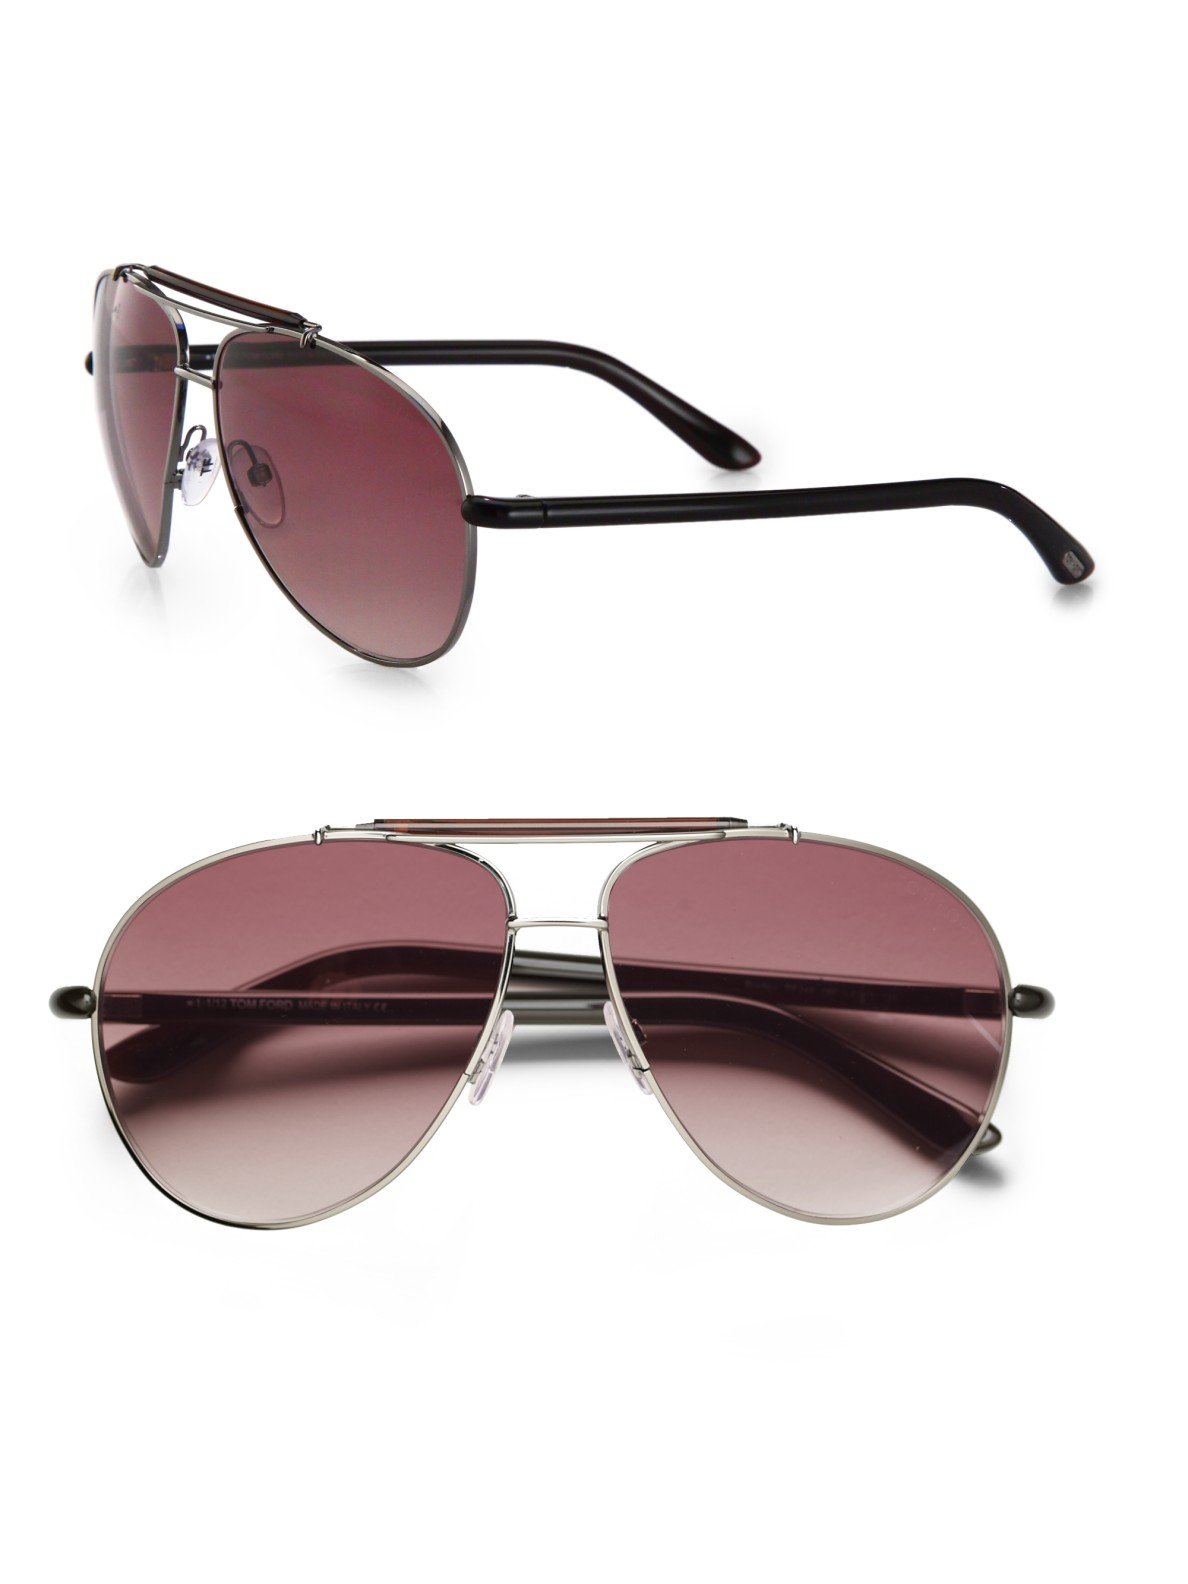 169cba4eed3a8 Tom Ford Bradley Metal Aviator Sunglasses in Black